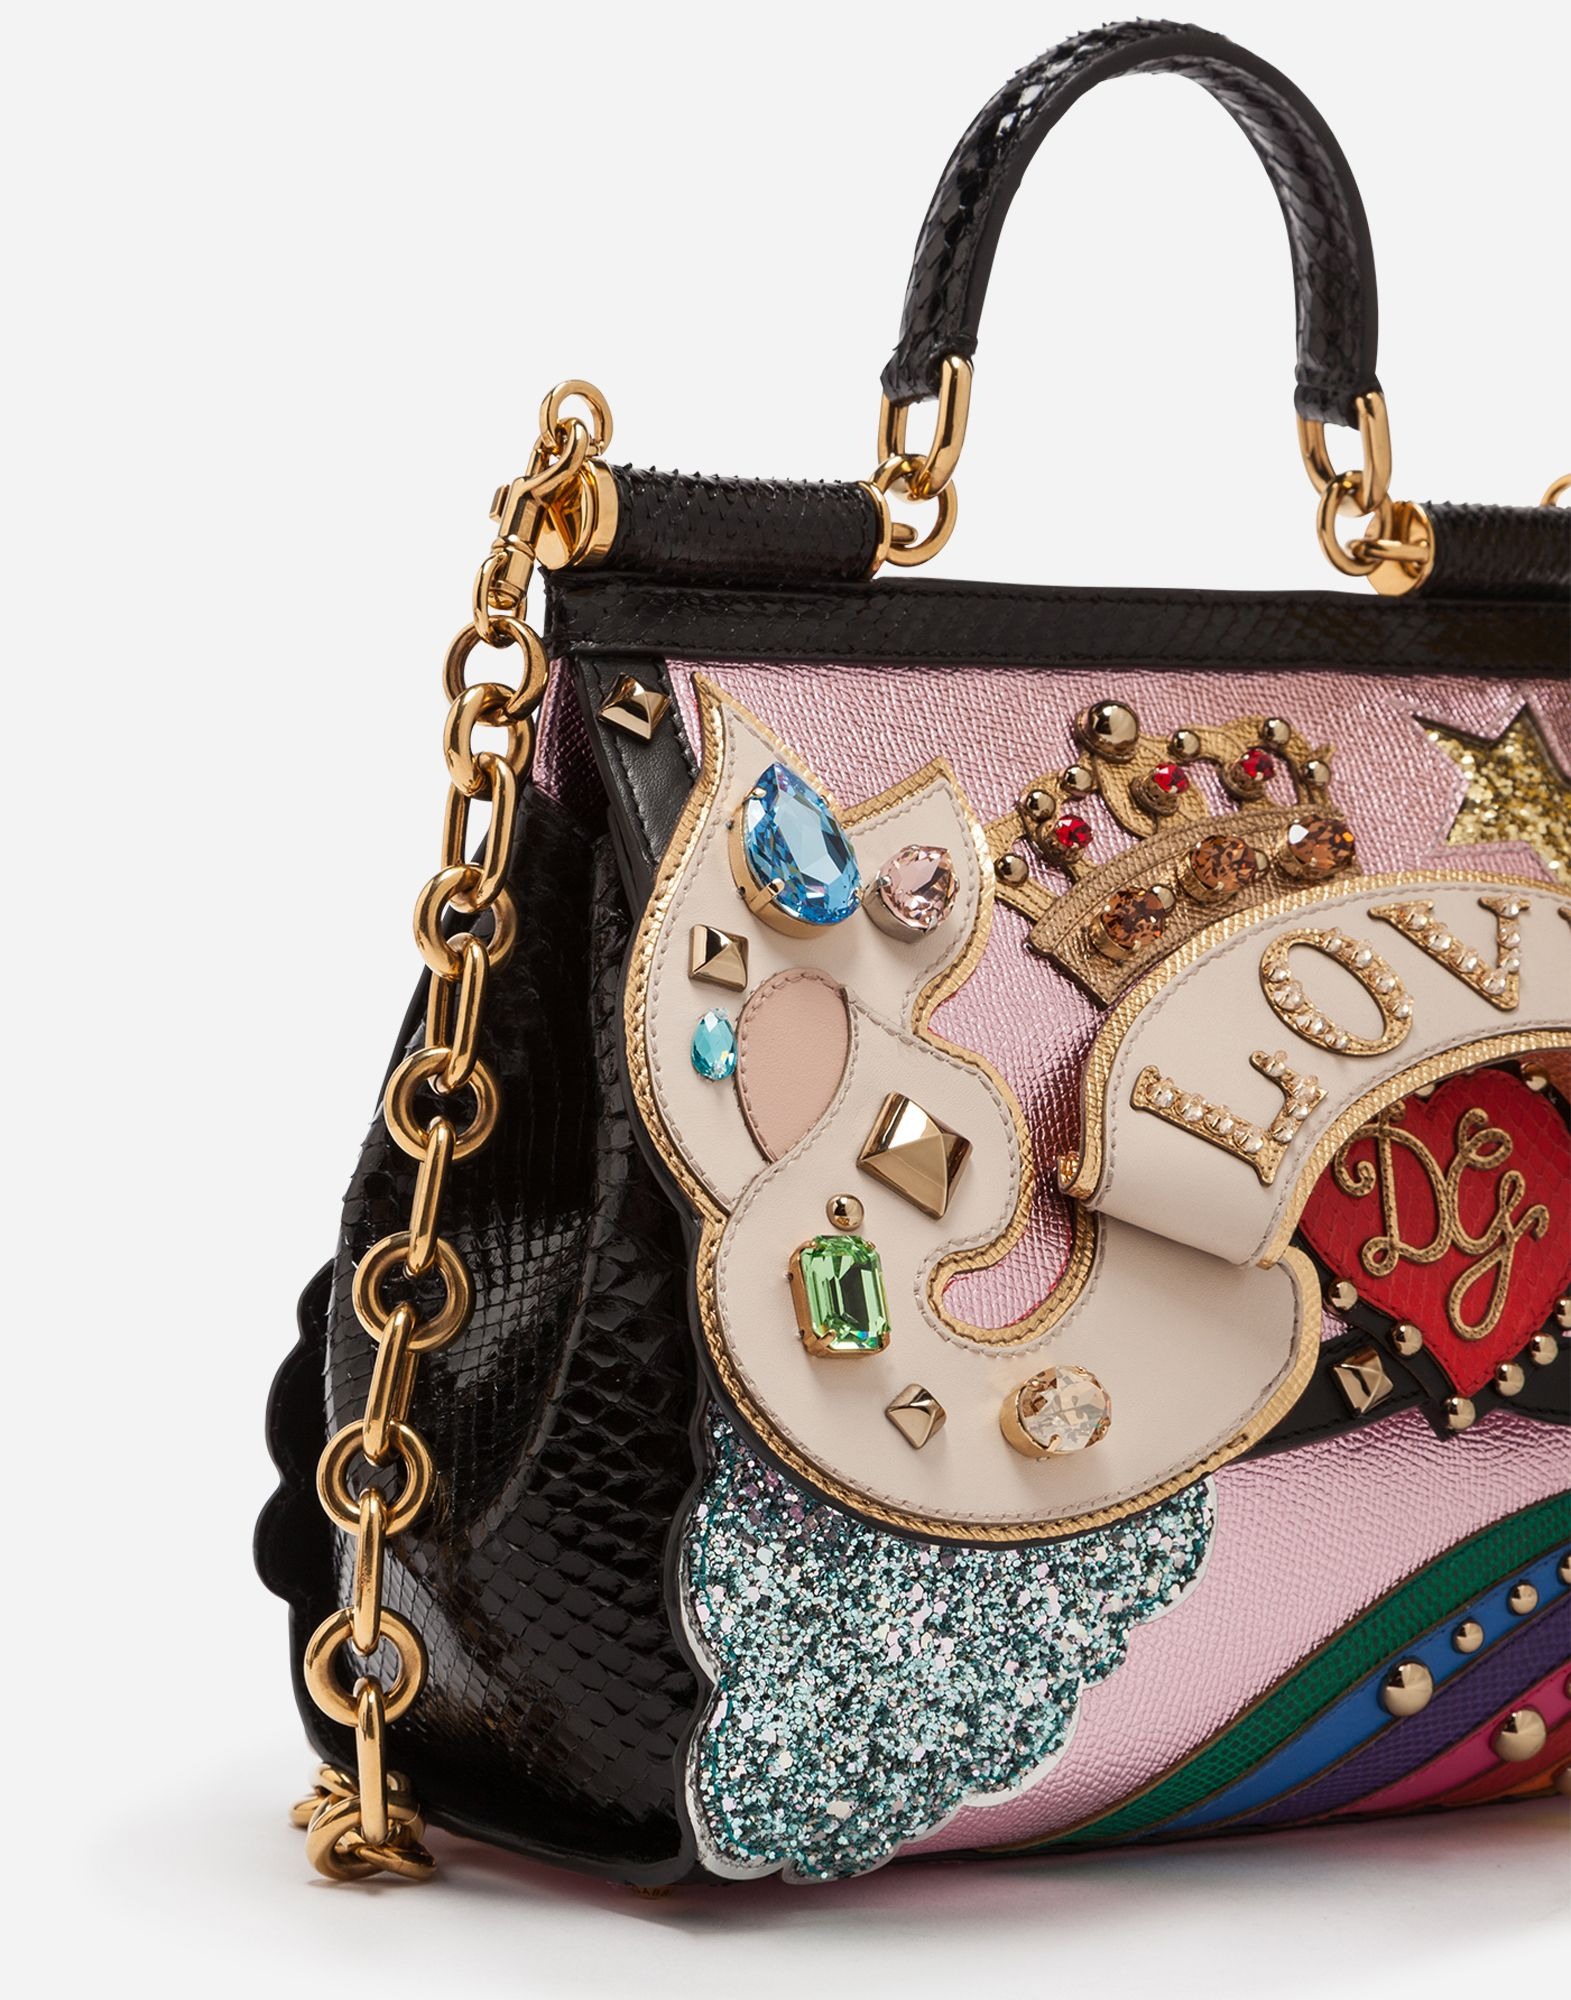 7cede6034585 Dolce Gabbana MEDIUM SICILY BAG IN A MIX OF MATERIALS WITH 3D PATCH AND  EMBROIDERIES